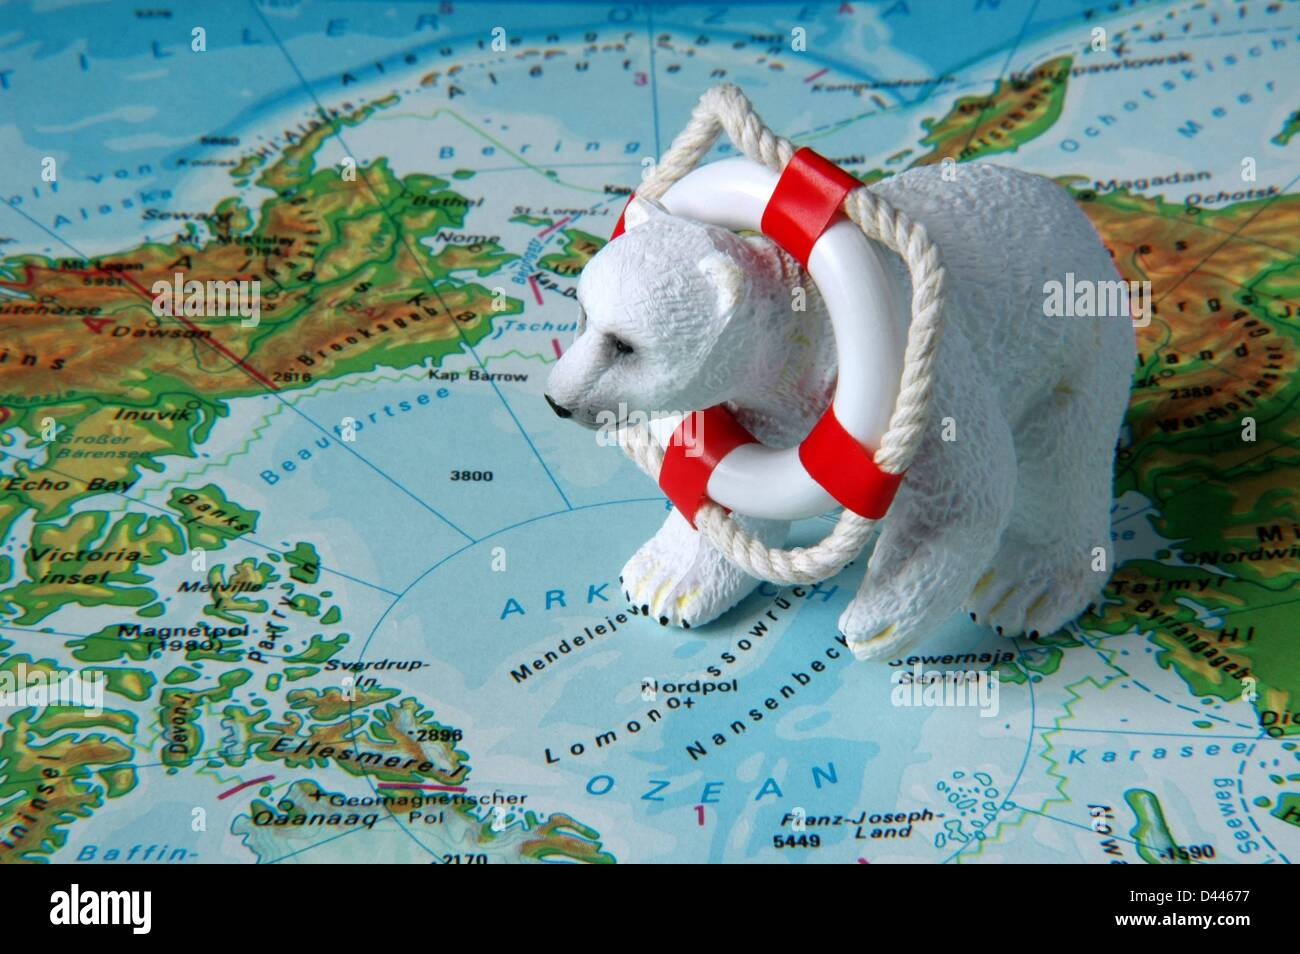 Illustration - A miniature polar bear is pictured with a miniature safety buoy around his neck sitting near the north pole on a map in Berlin, Germany, 22 December 2007. Photo: Berliner Verlag/S.Steinach Stock Photo